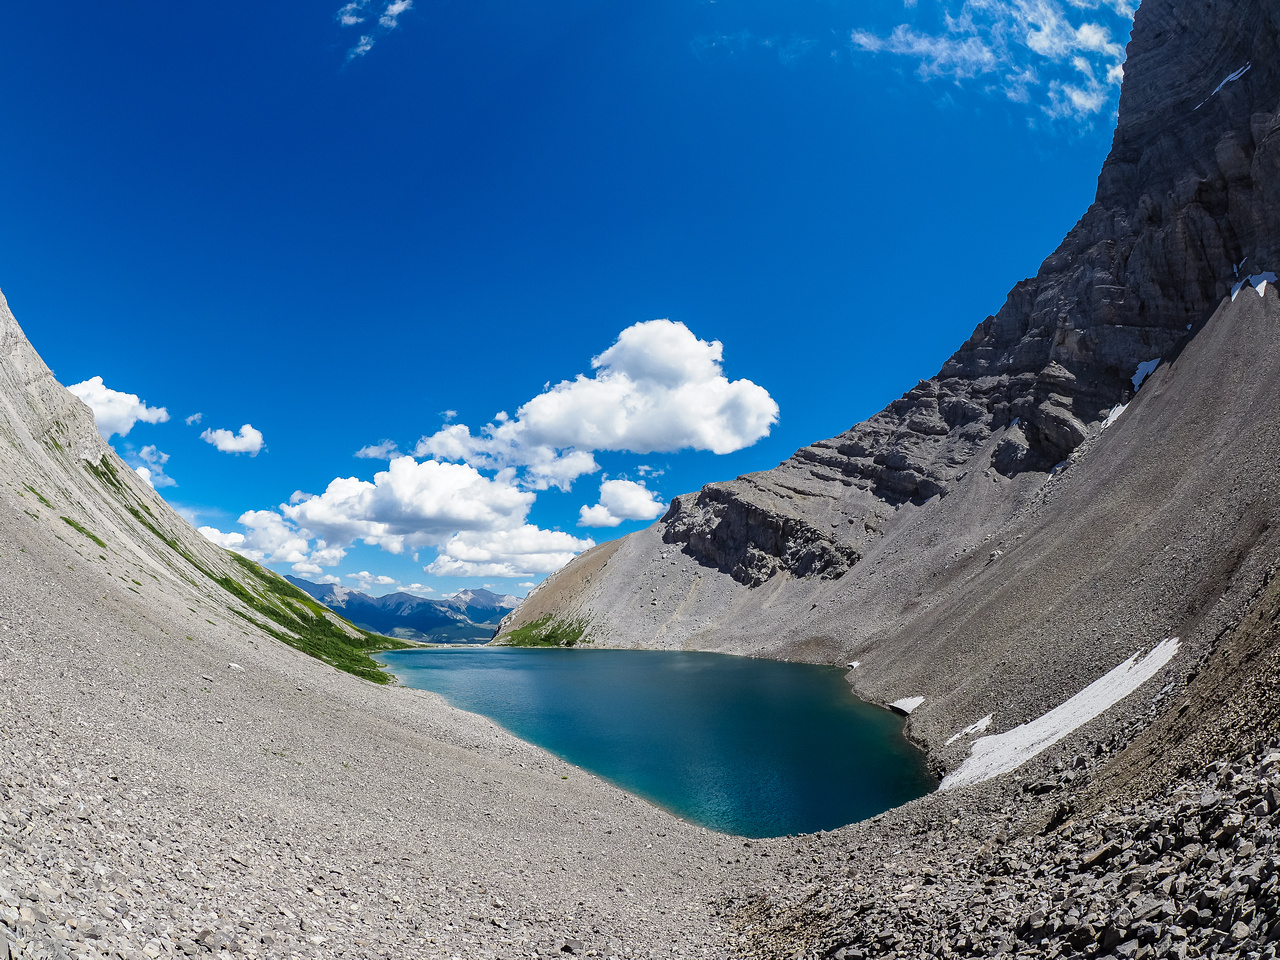 A fisheye shot from the back of the lake gives a better sense of the feeling of being under the impressive cliffs of Mount McPhail and Horned Mountain.